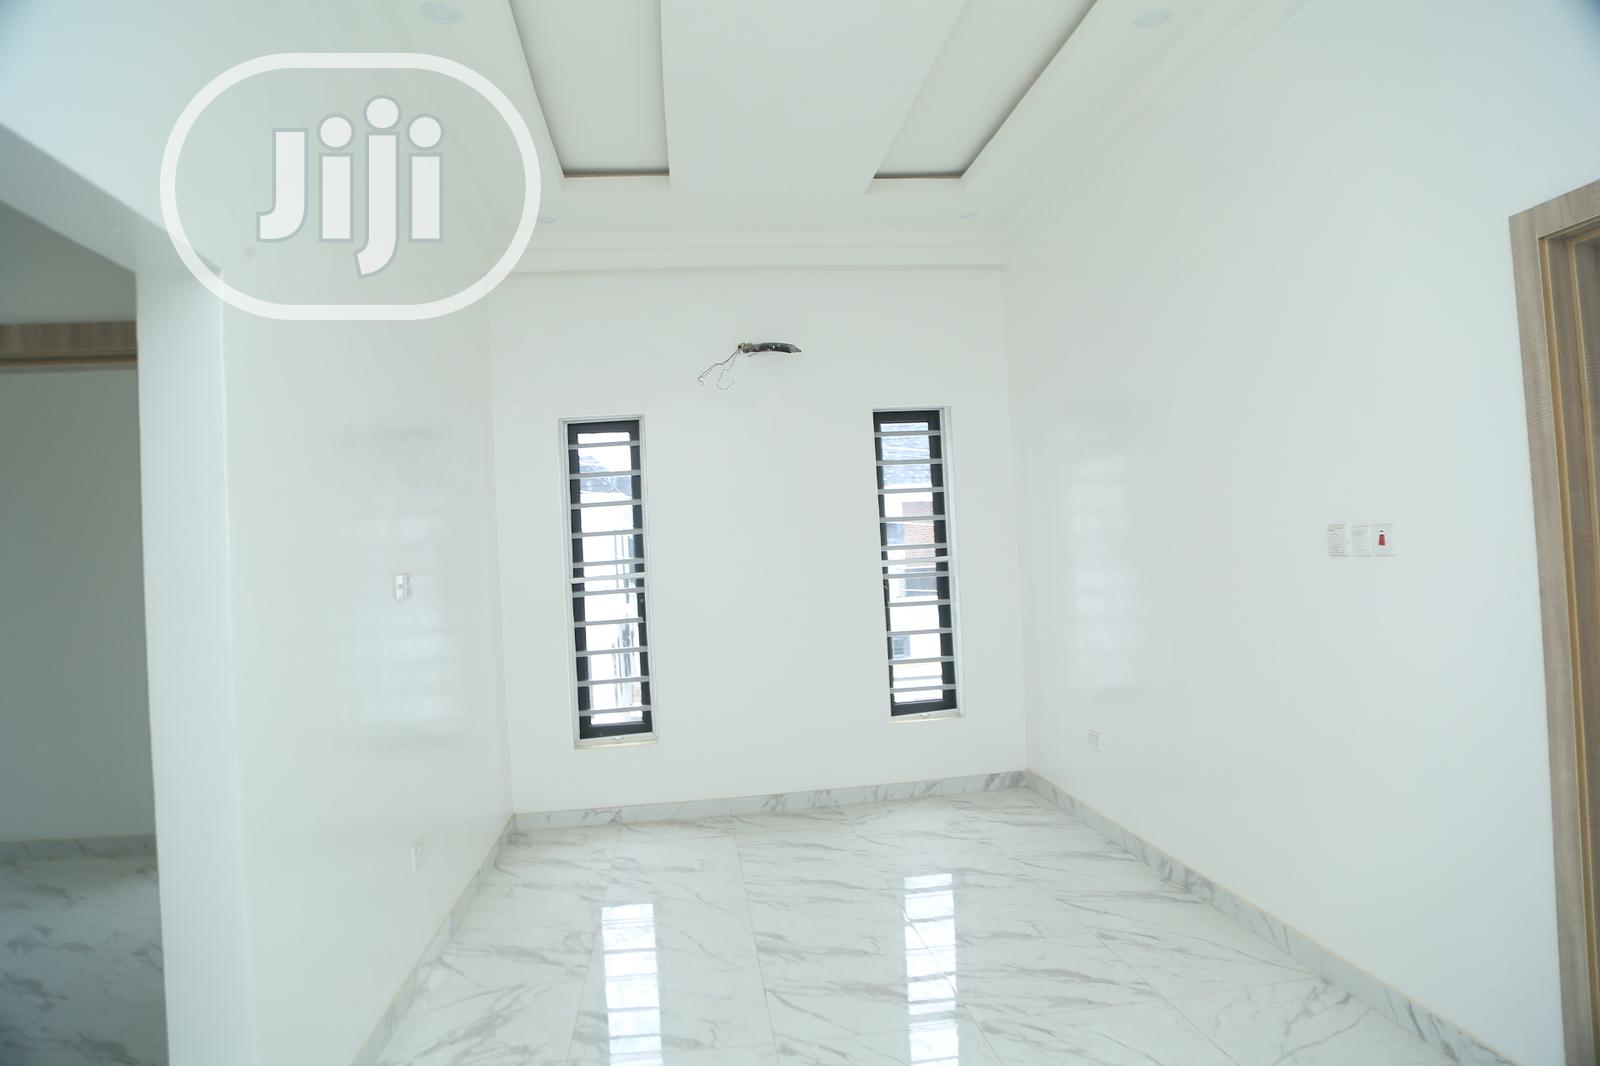 4bedroom Terrace   Houses & Apartments For Rent for sale in Lekki, Lagos State, Nigeria